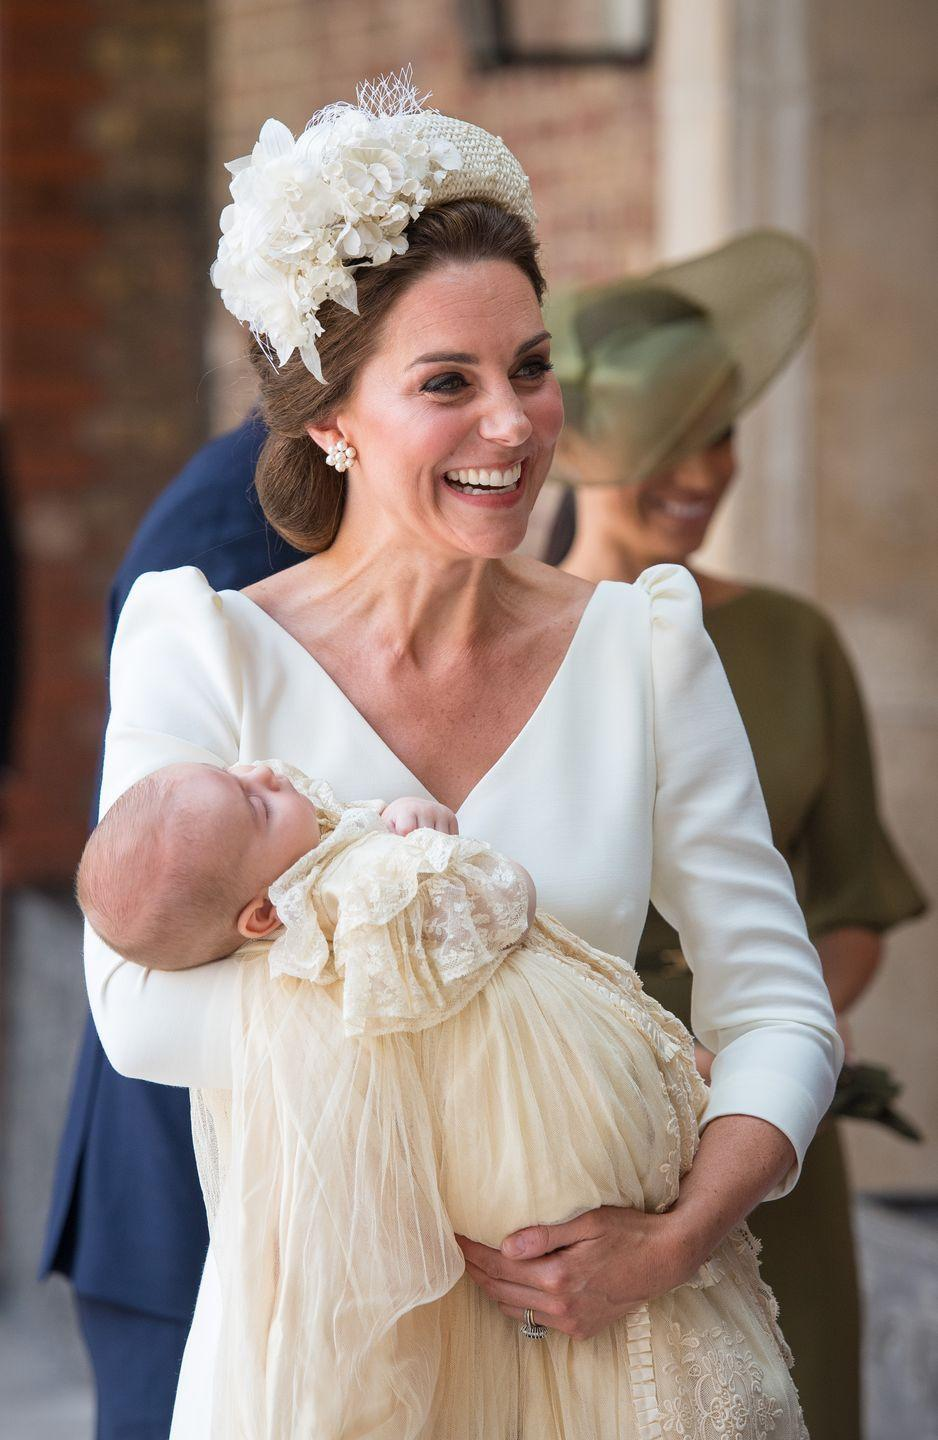 <p>Arriving at St. James's Palace in London for Prince Louis's christening service, Middleton wore a white puffed sleeve dress and an ornate hatband. </p>